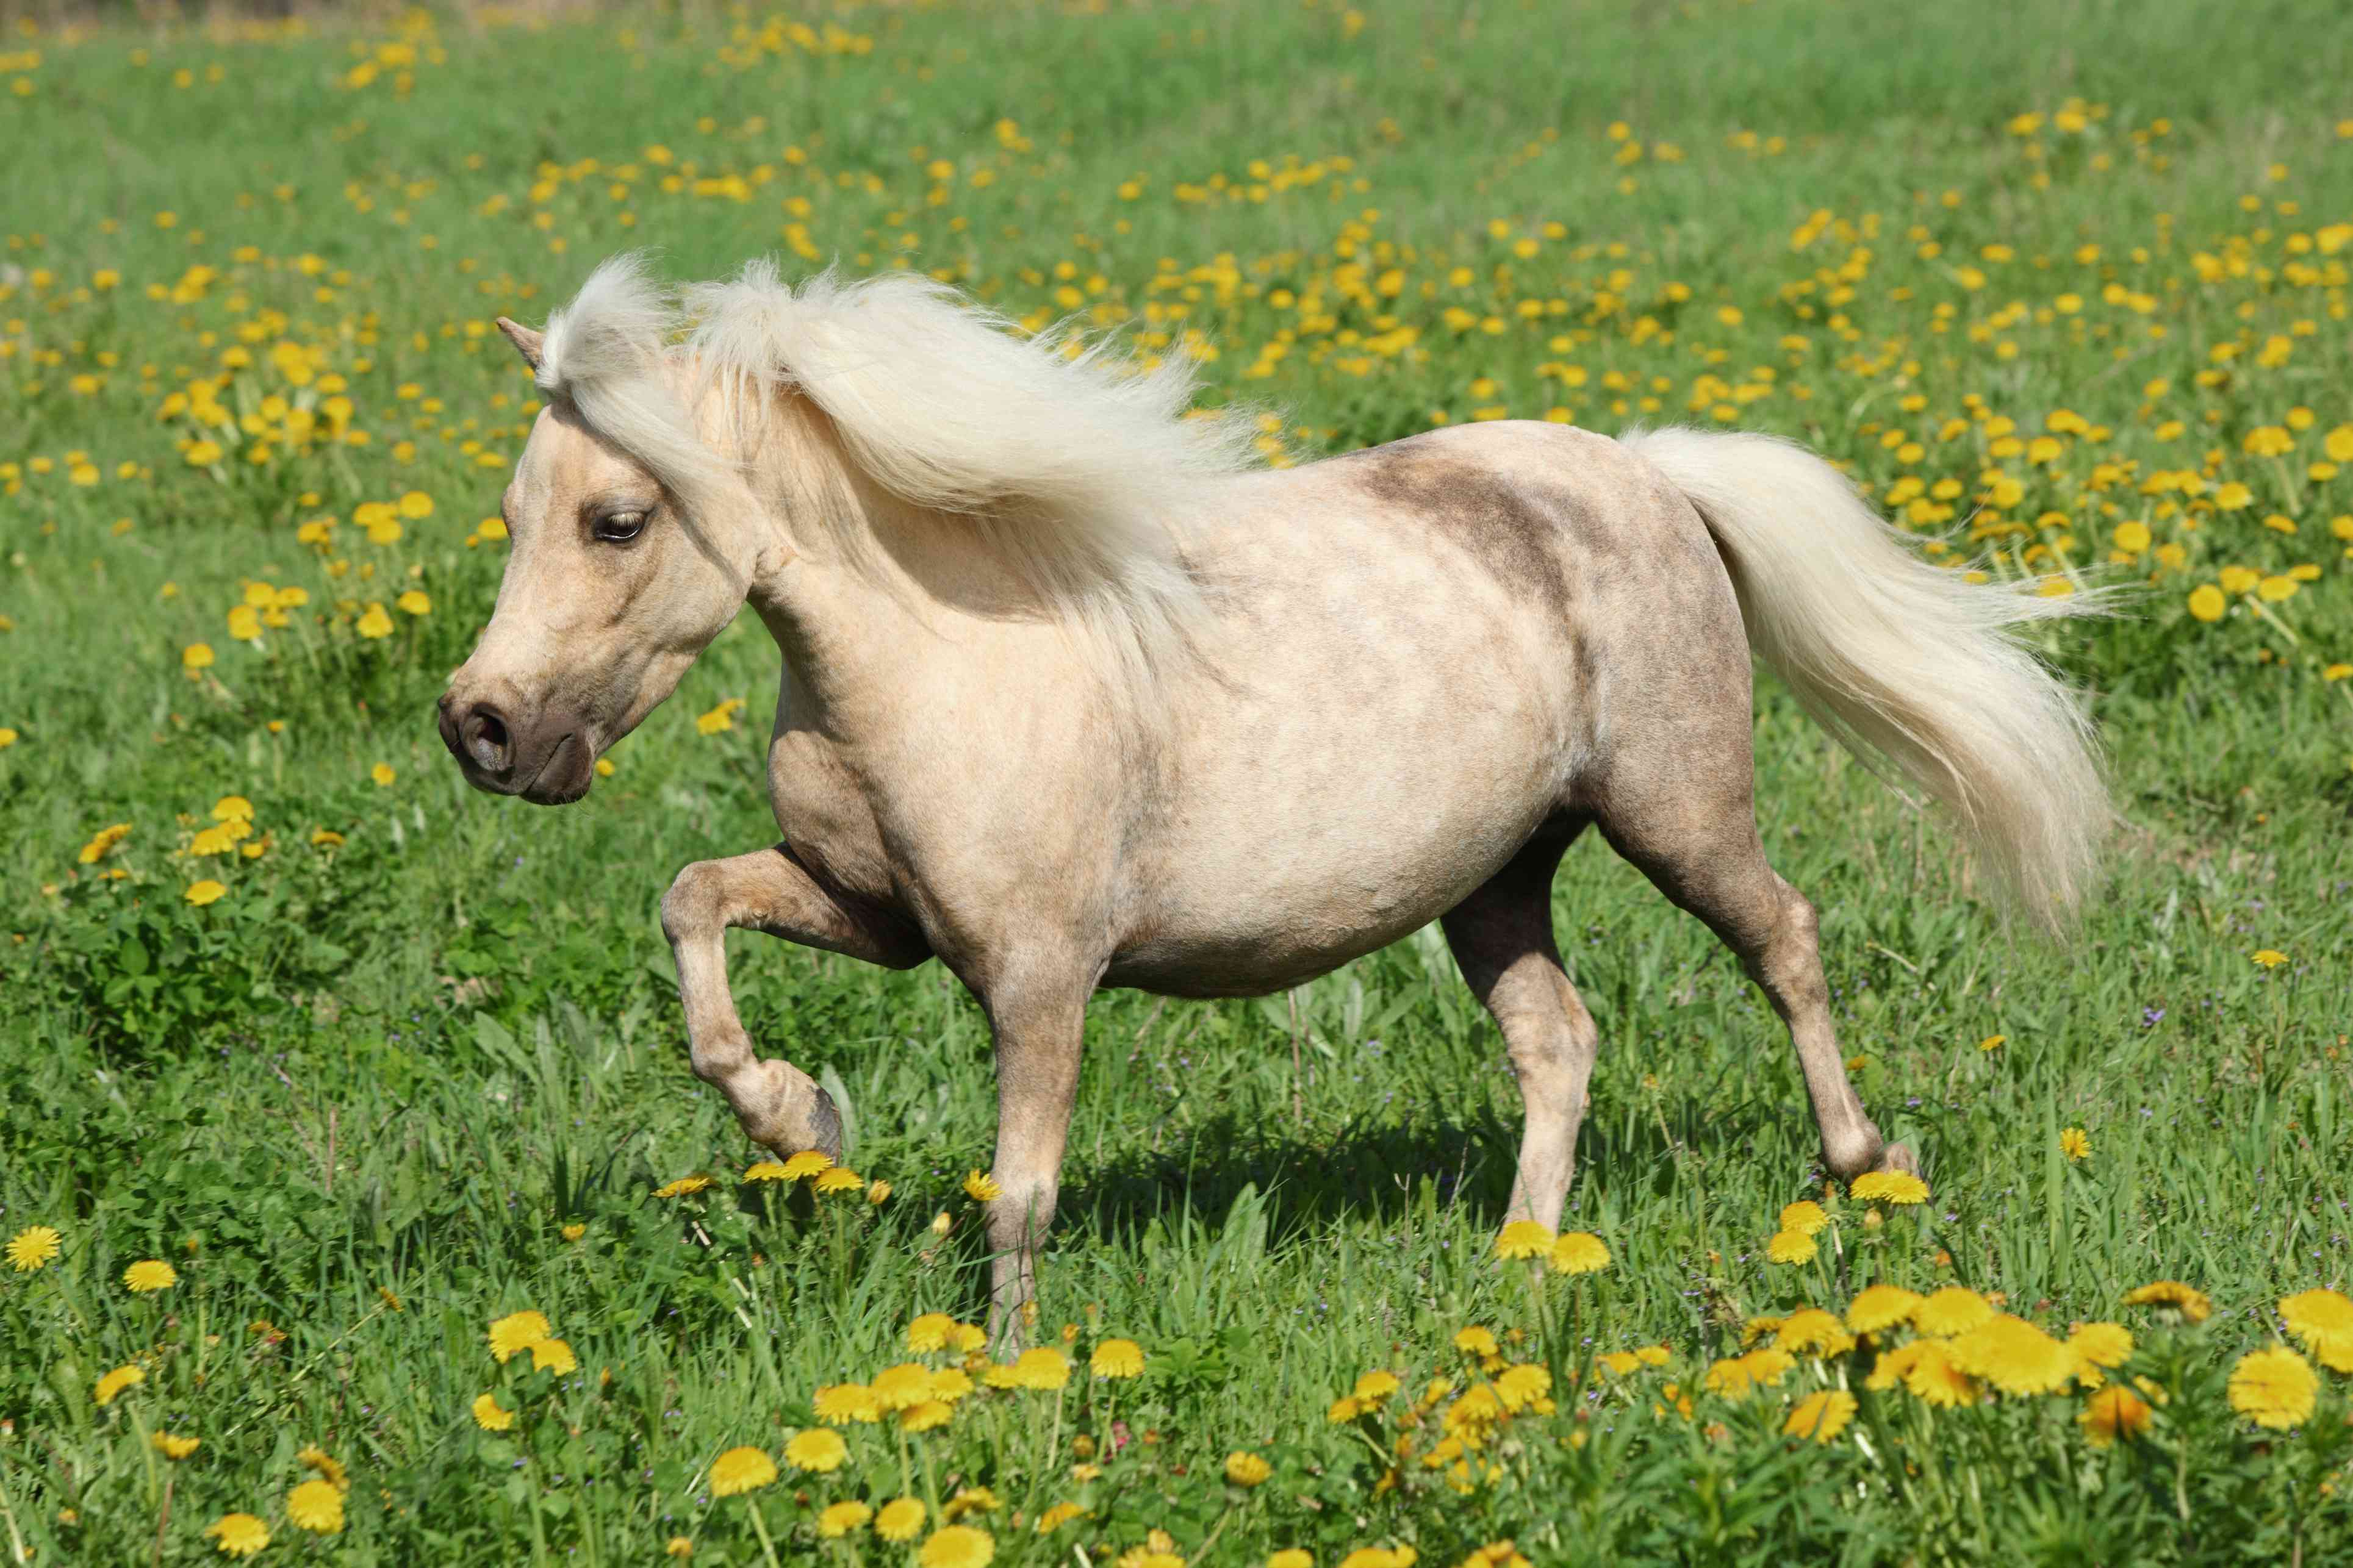 white falabella small horse trots through meadow full of dandelions